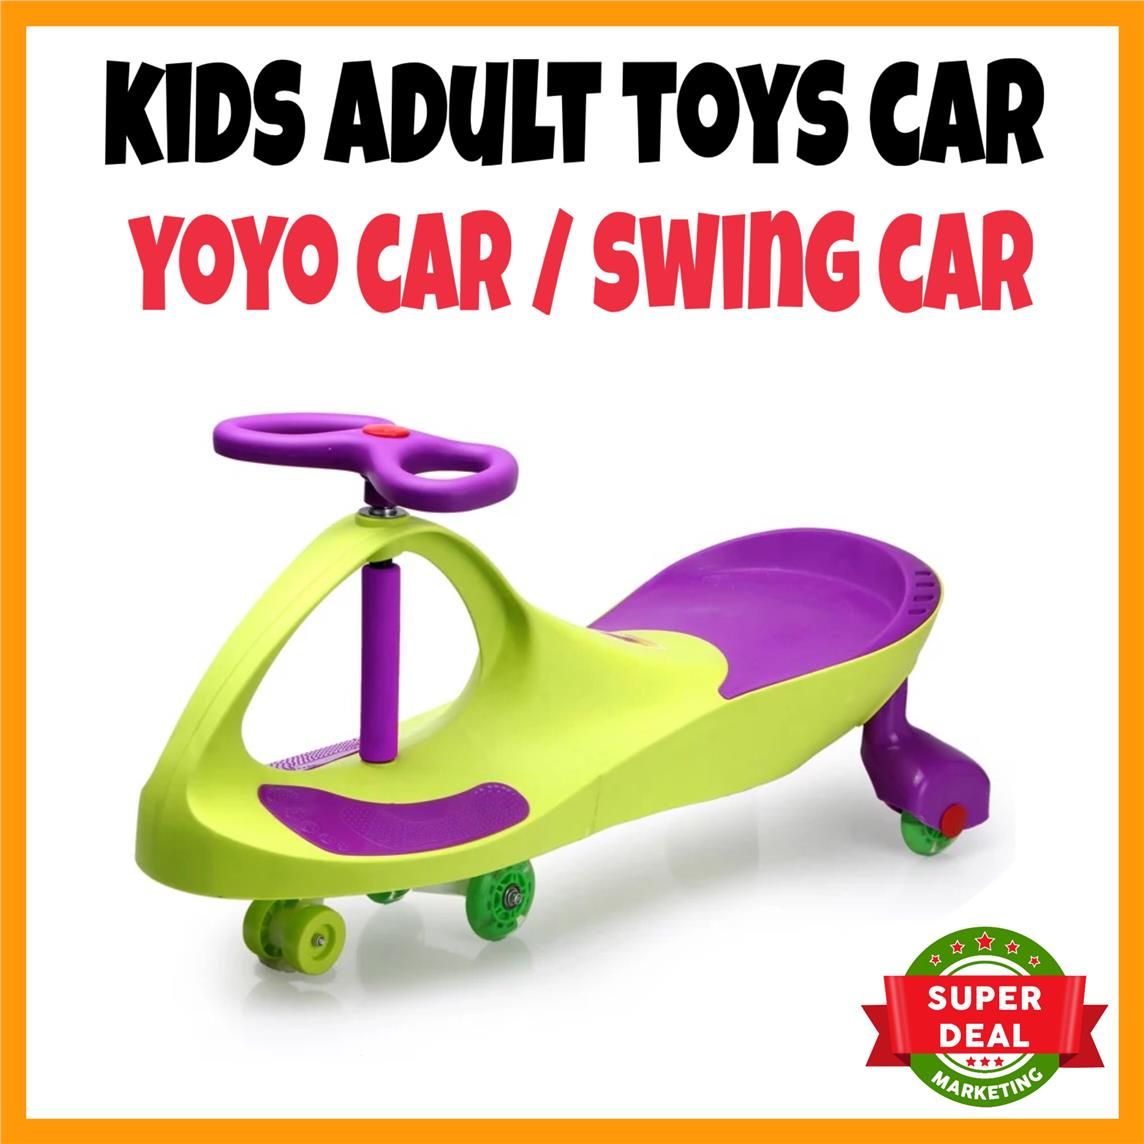 PREMIUM Kid Children Toys Car Self Powered Ride-On YOYO Car Swing Car